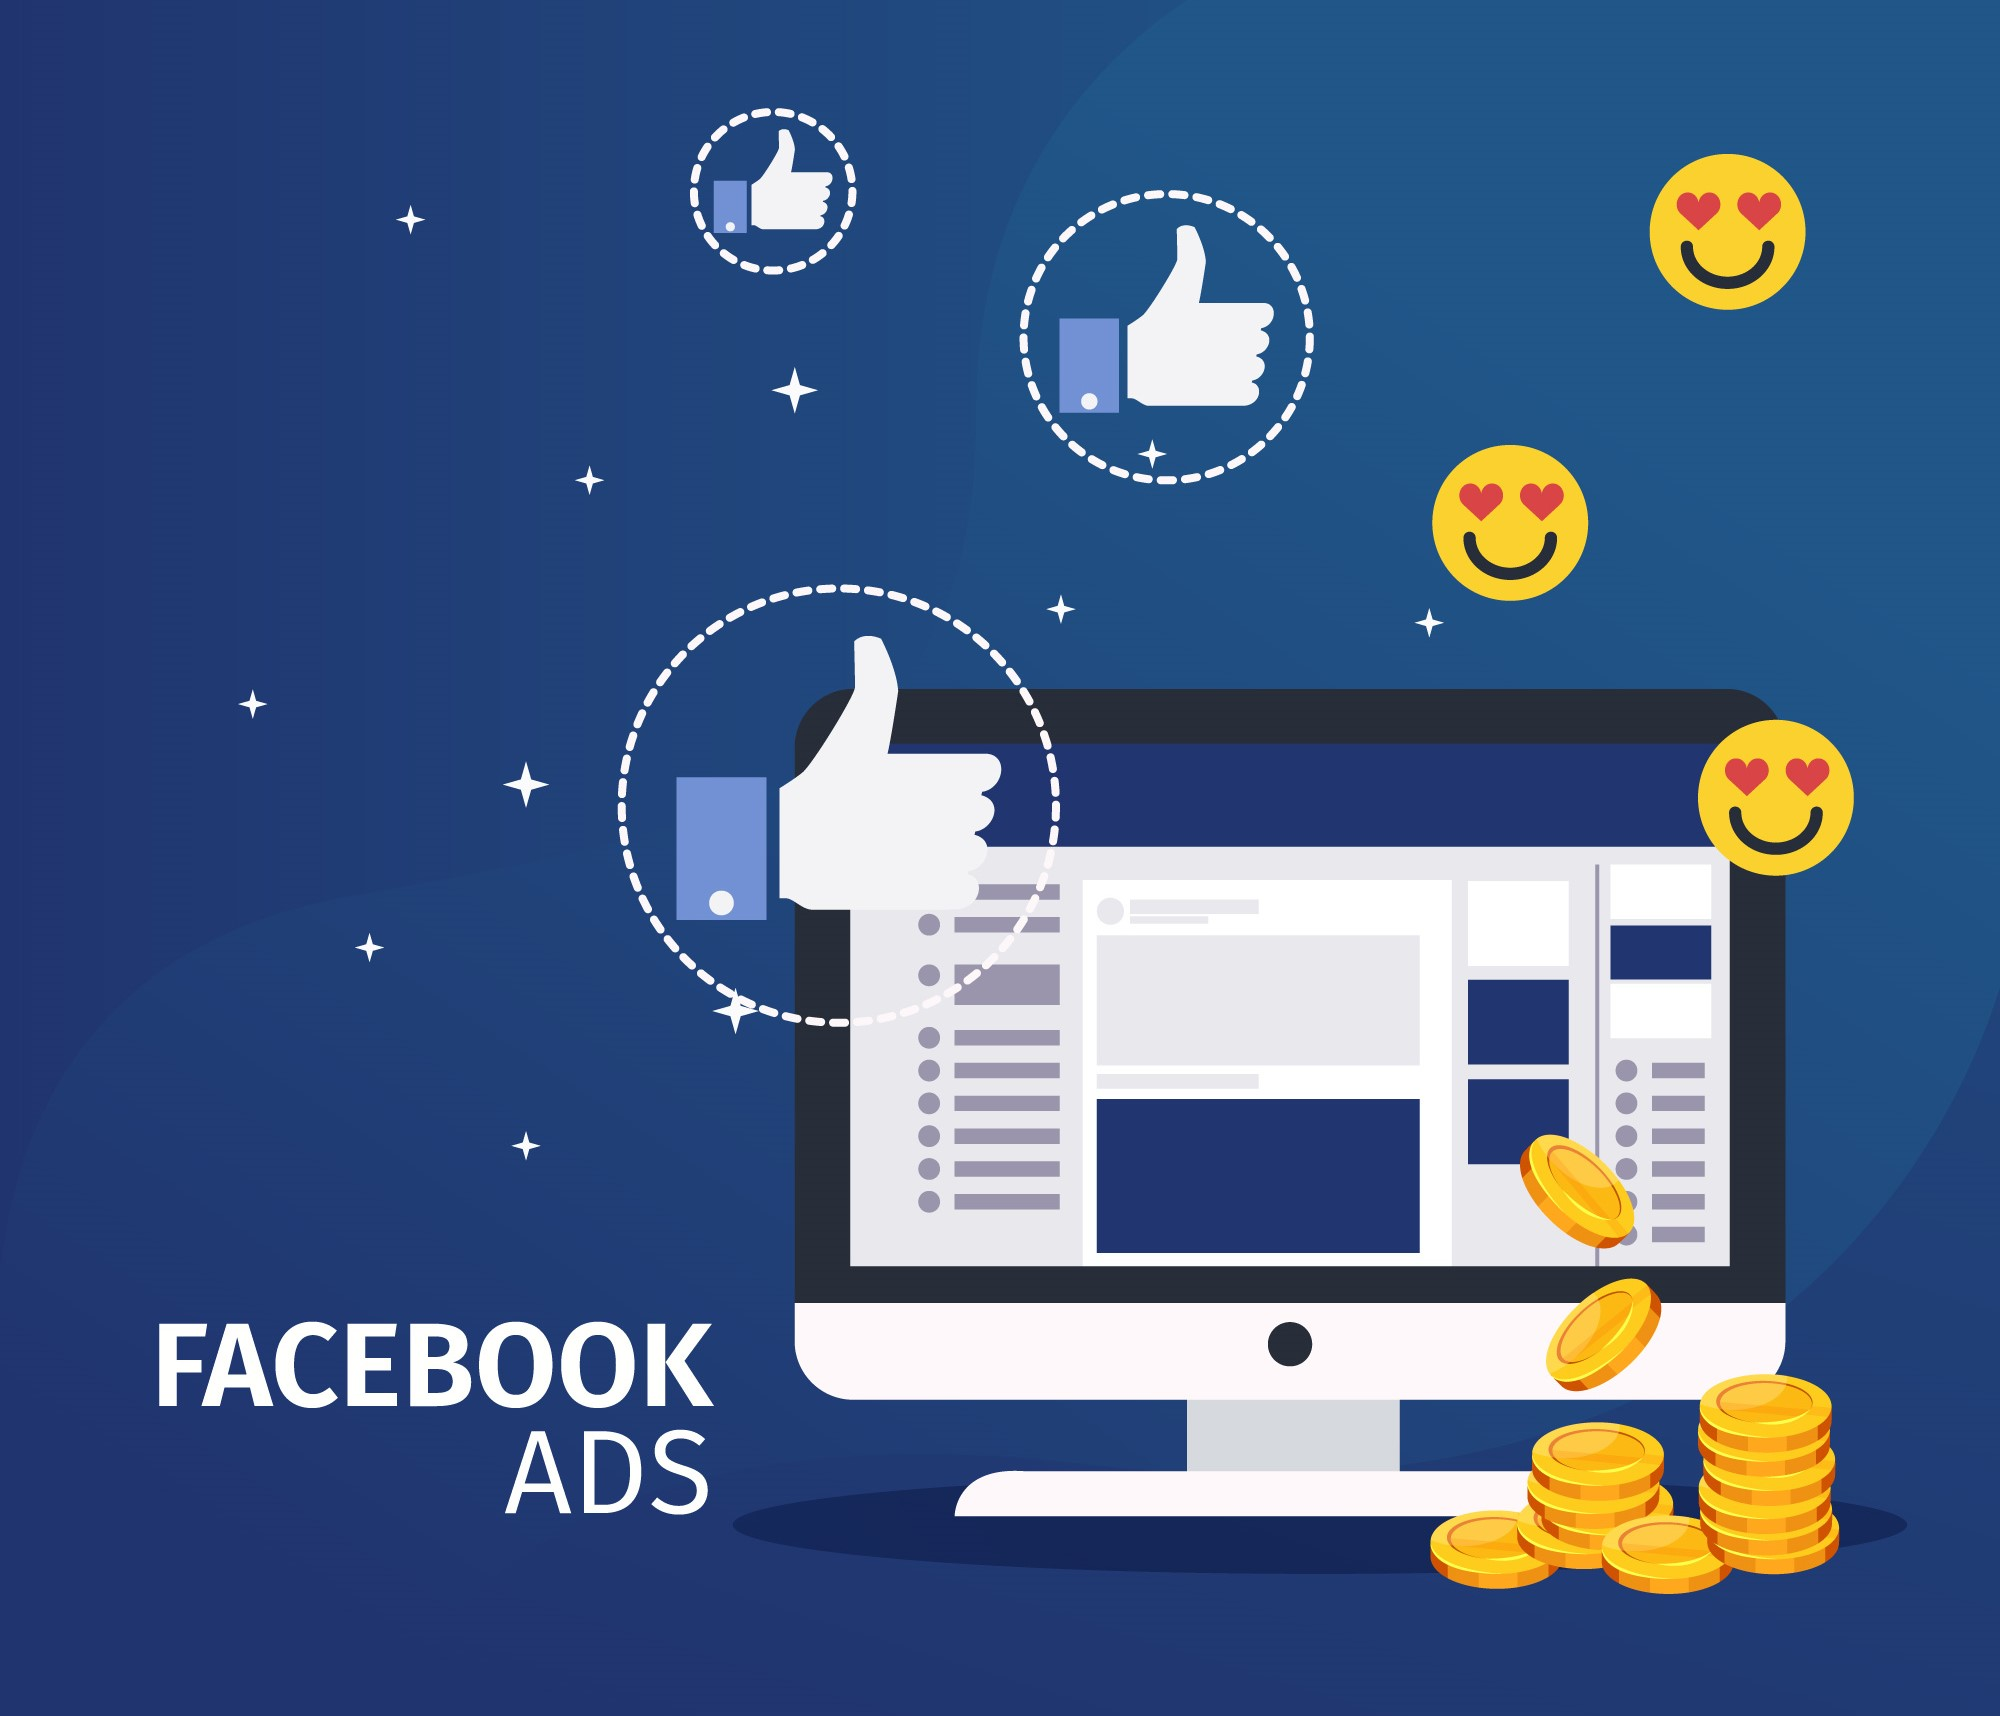 What Types of Ads Does Facebook Have? | AIA